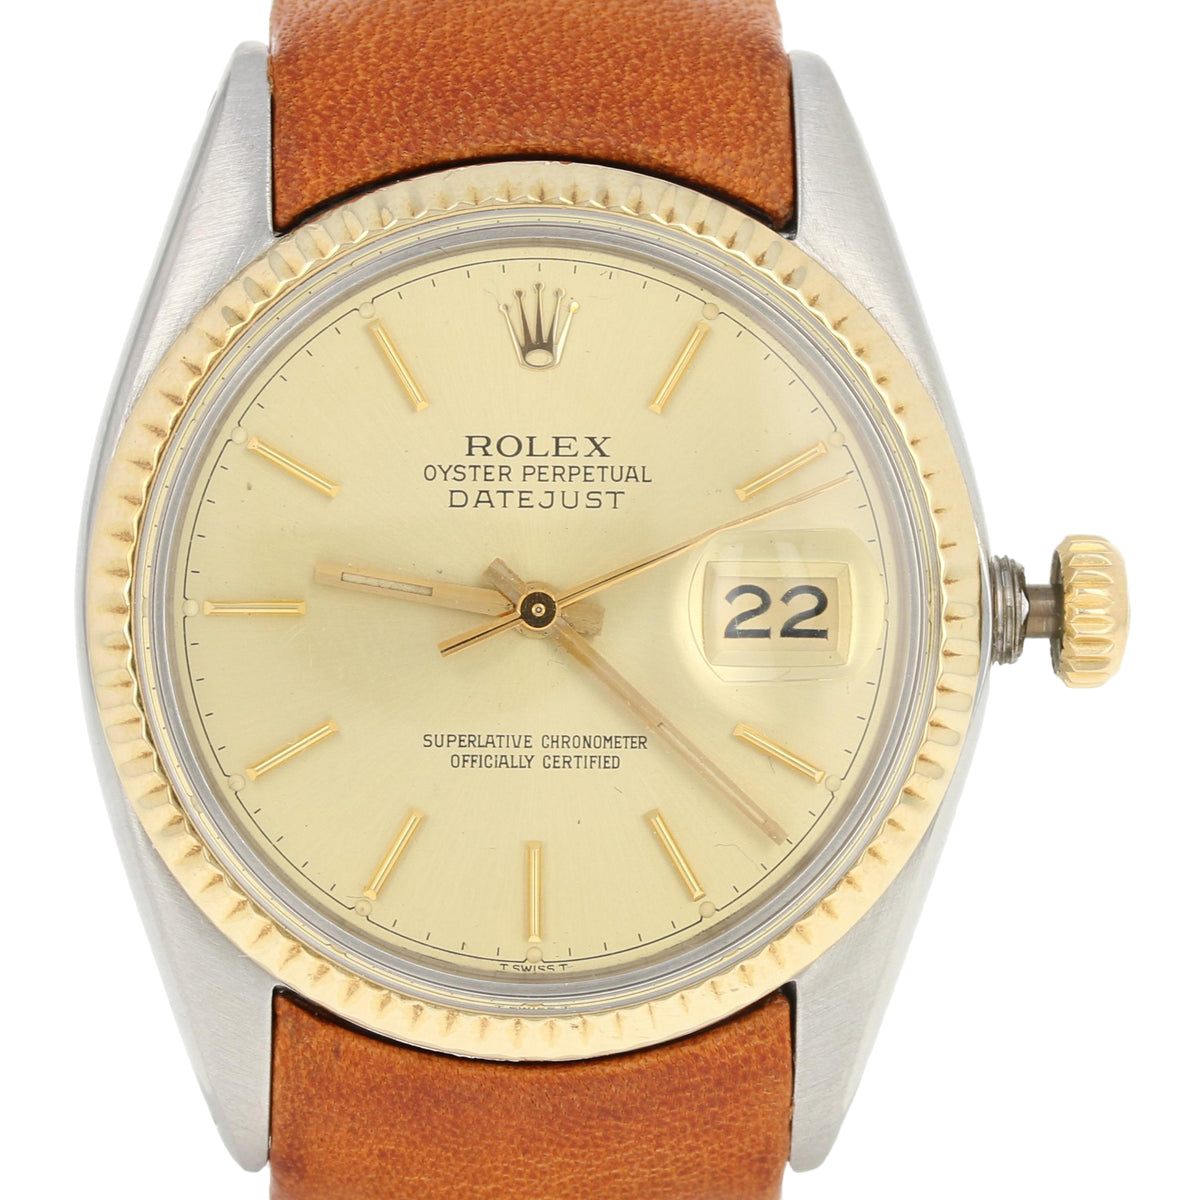 Rolex Oyster Perpetual Datejust Men's Watch - Stainless & 18k Gold 16013